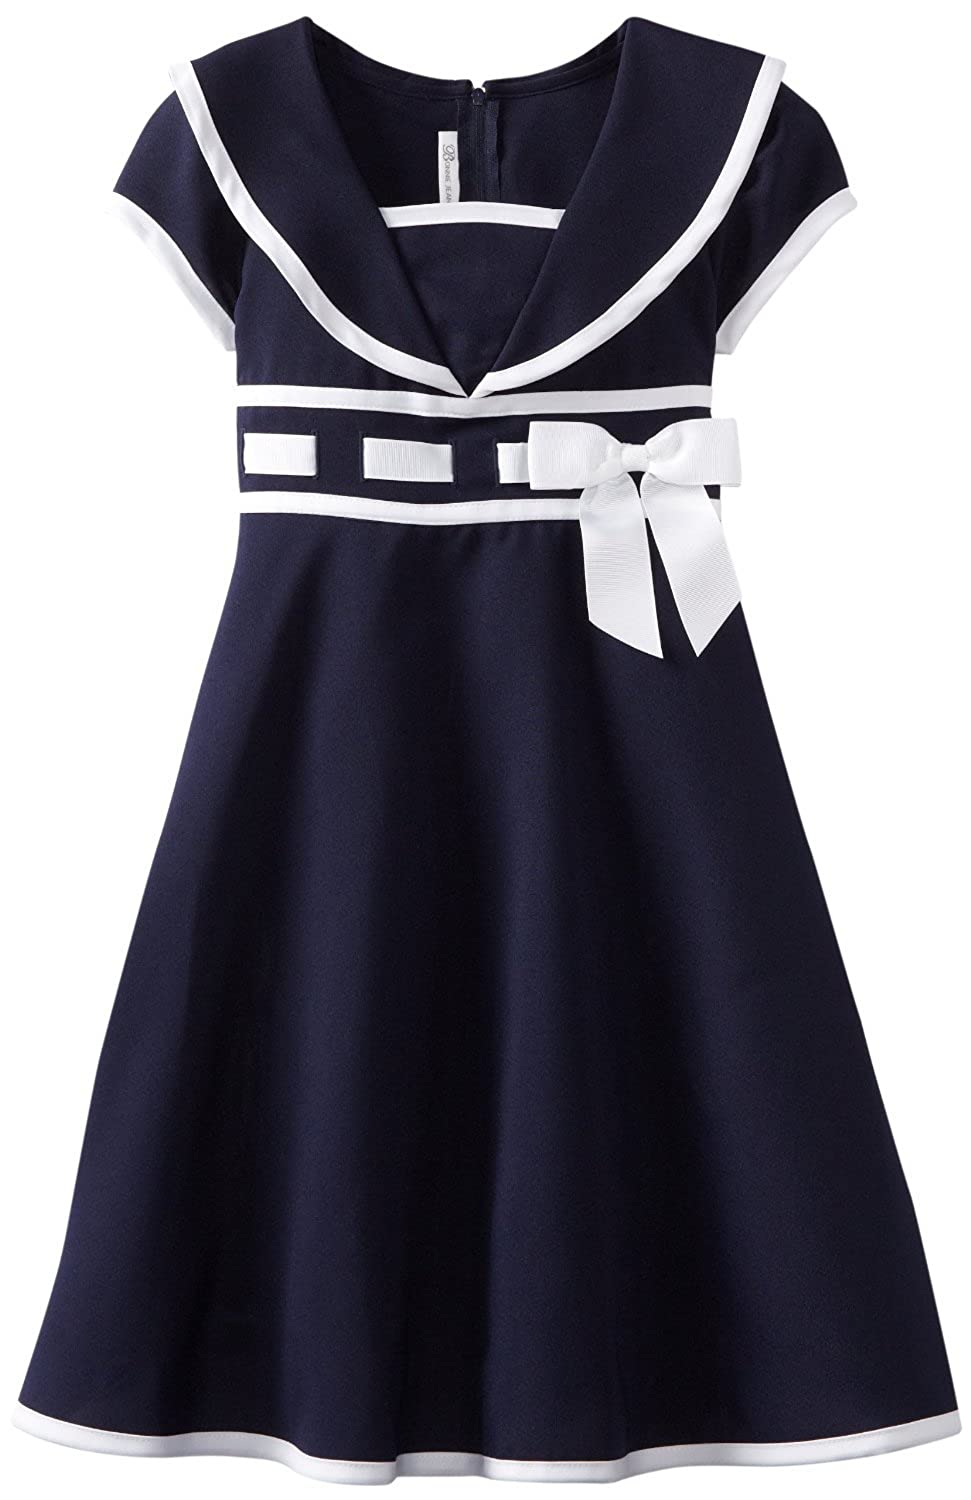 1930s Childrens Fashion: Girls, Boys, Toddler, Baby Costumes Girls Navy Sailor Dress - Nautical Dress $34.98 AT vintagedancer.com